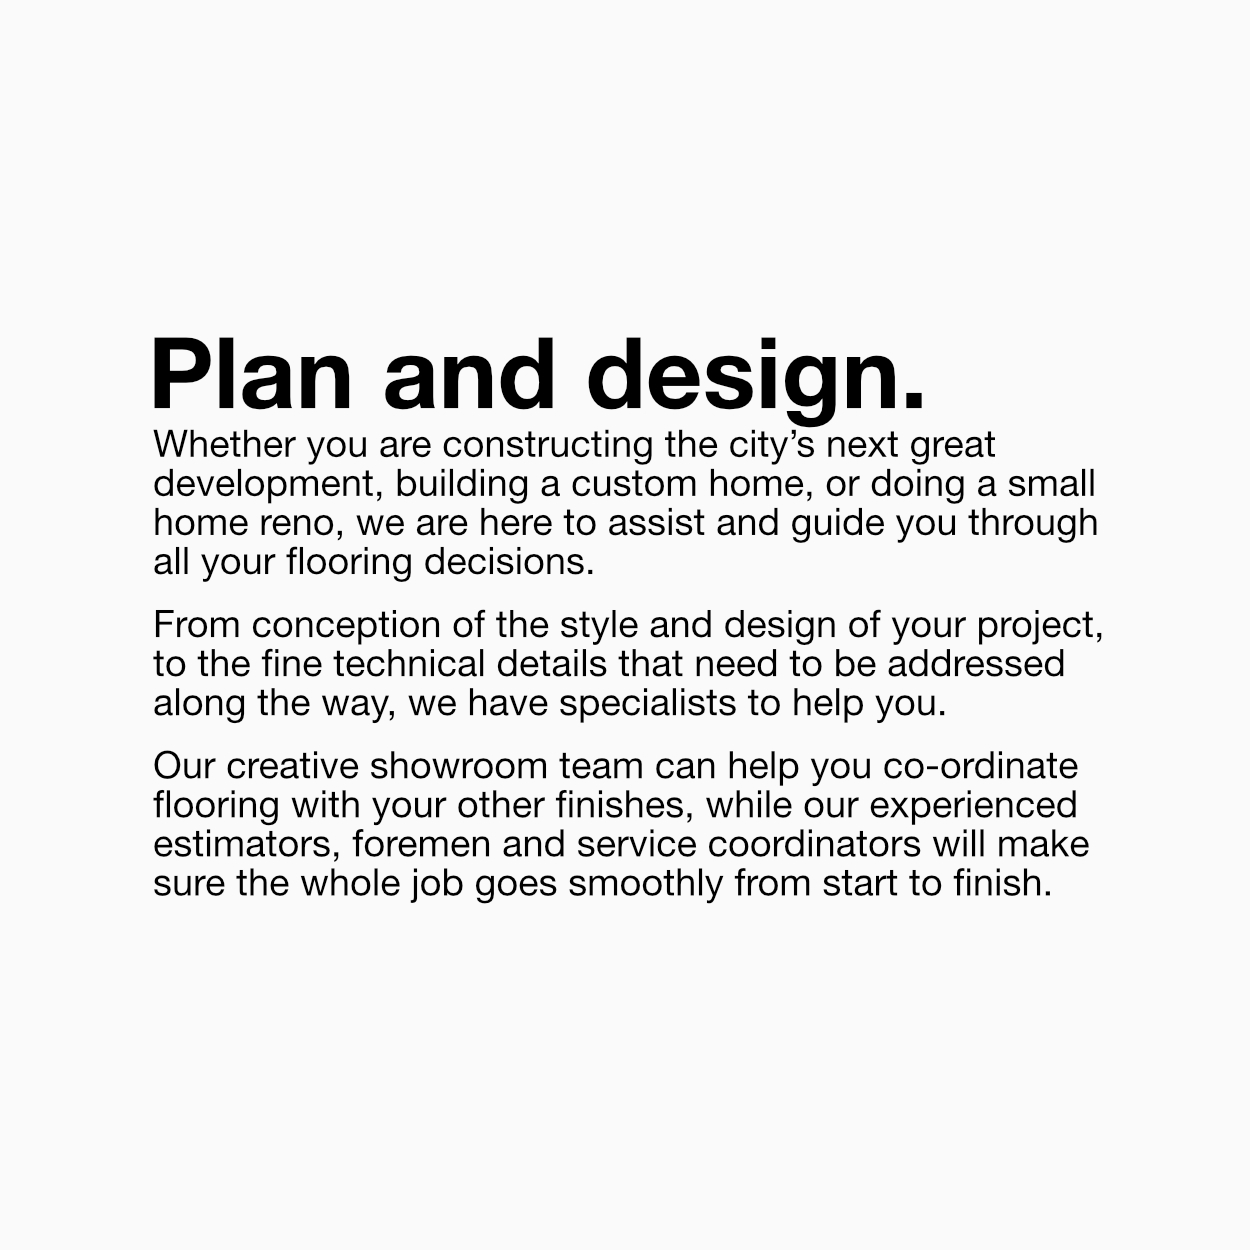 plan and design.jpg